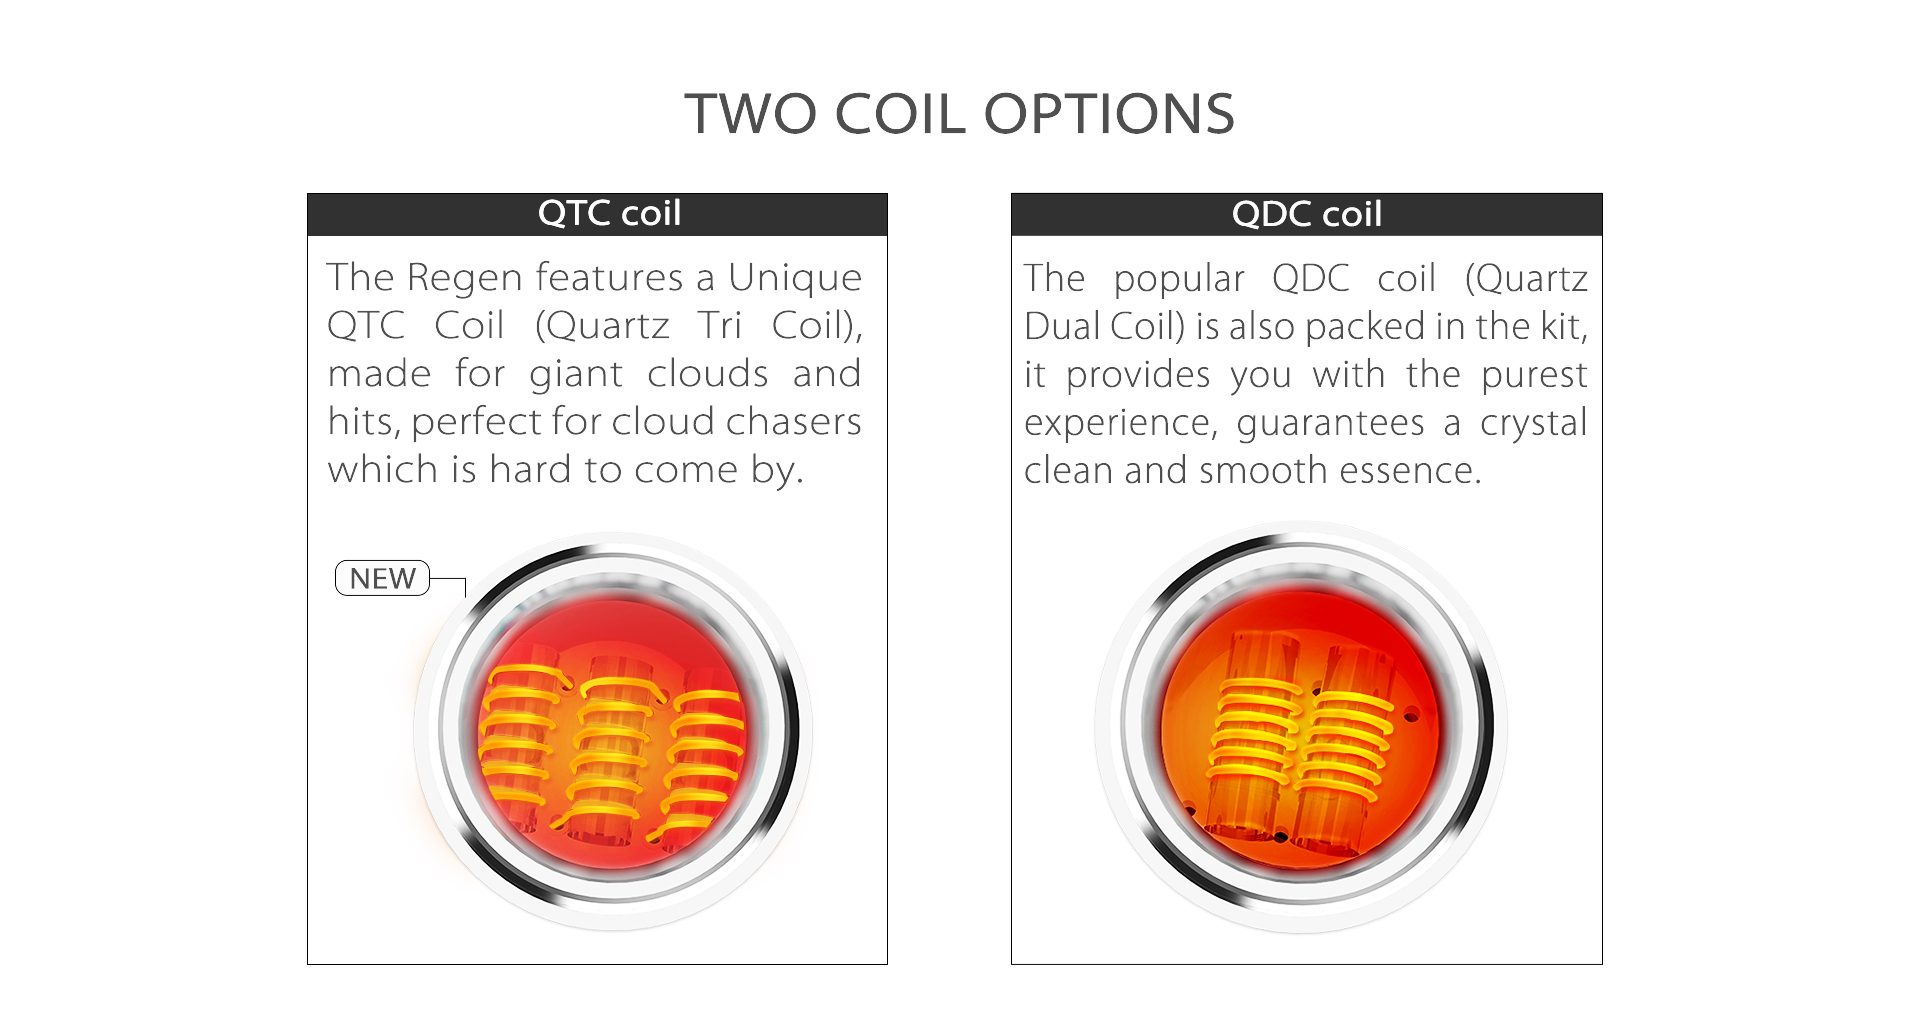 The Yocan Regen vaporizer pen provide two coil options: QTC (Quart Tri Coil) and QDC (Quartz Dual Coil).